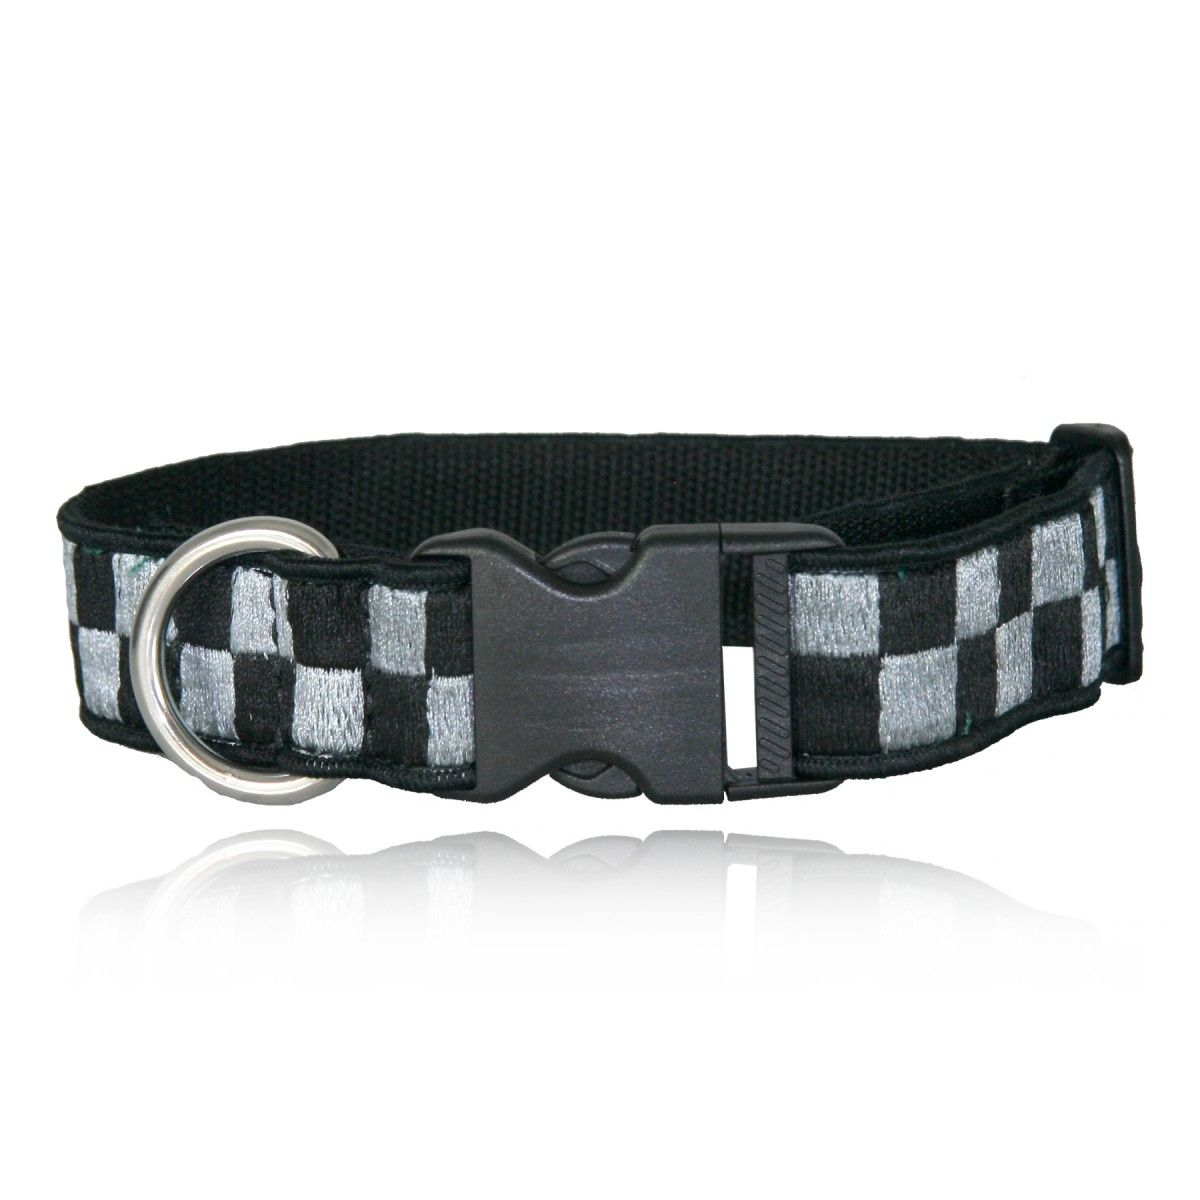 "1 1/2"" Decorative Embroidered Collar, Silver/Black"